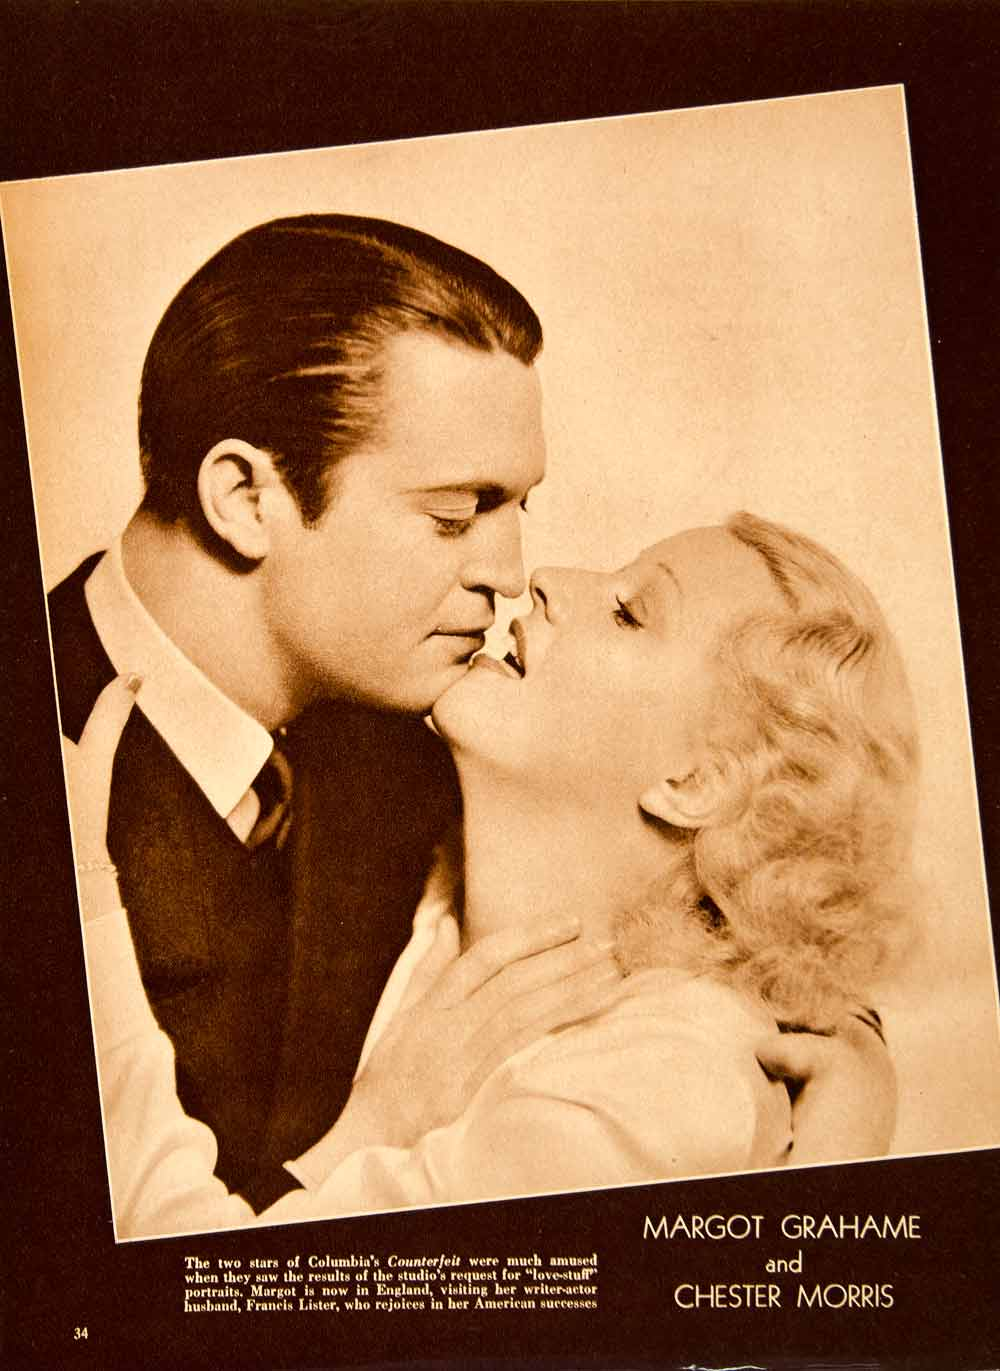 1936 Rotogravure Margot Grahame Chester Morris Counterfeit Romance On SBM1